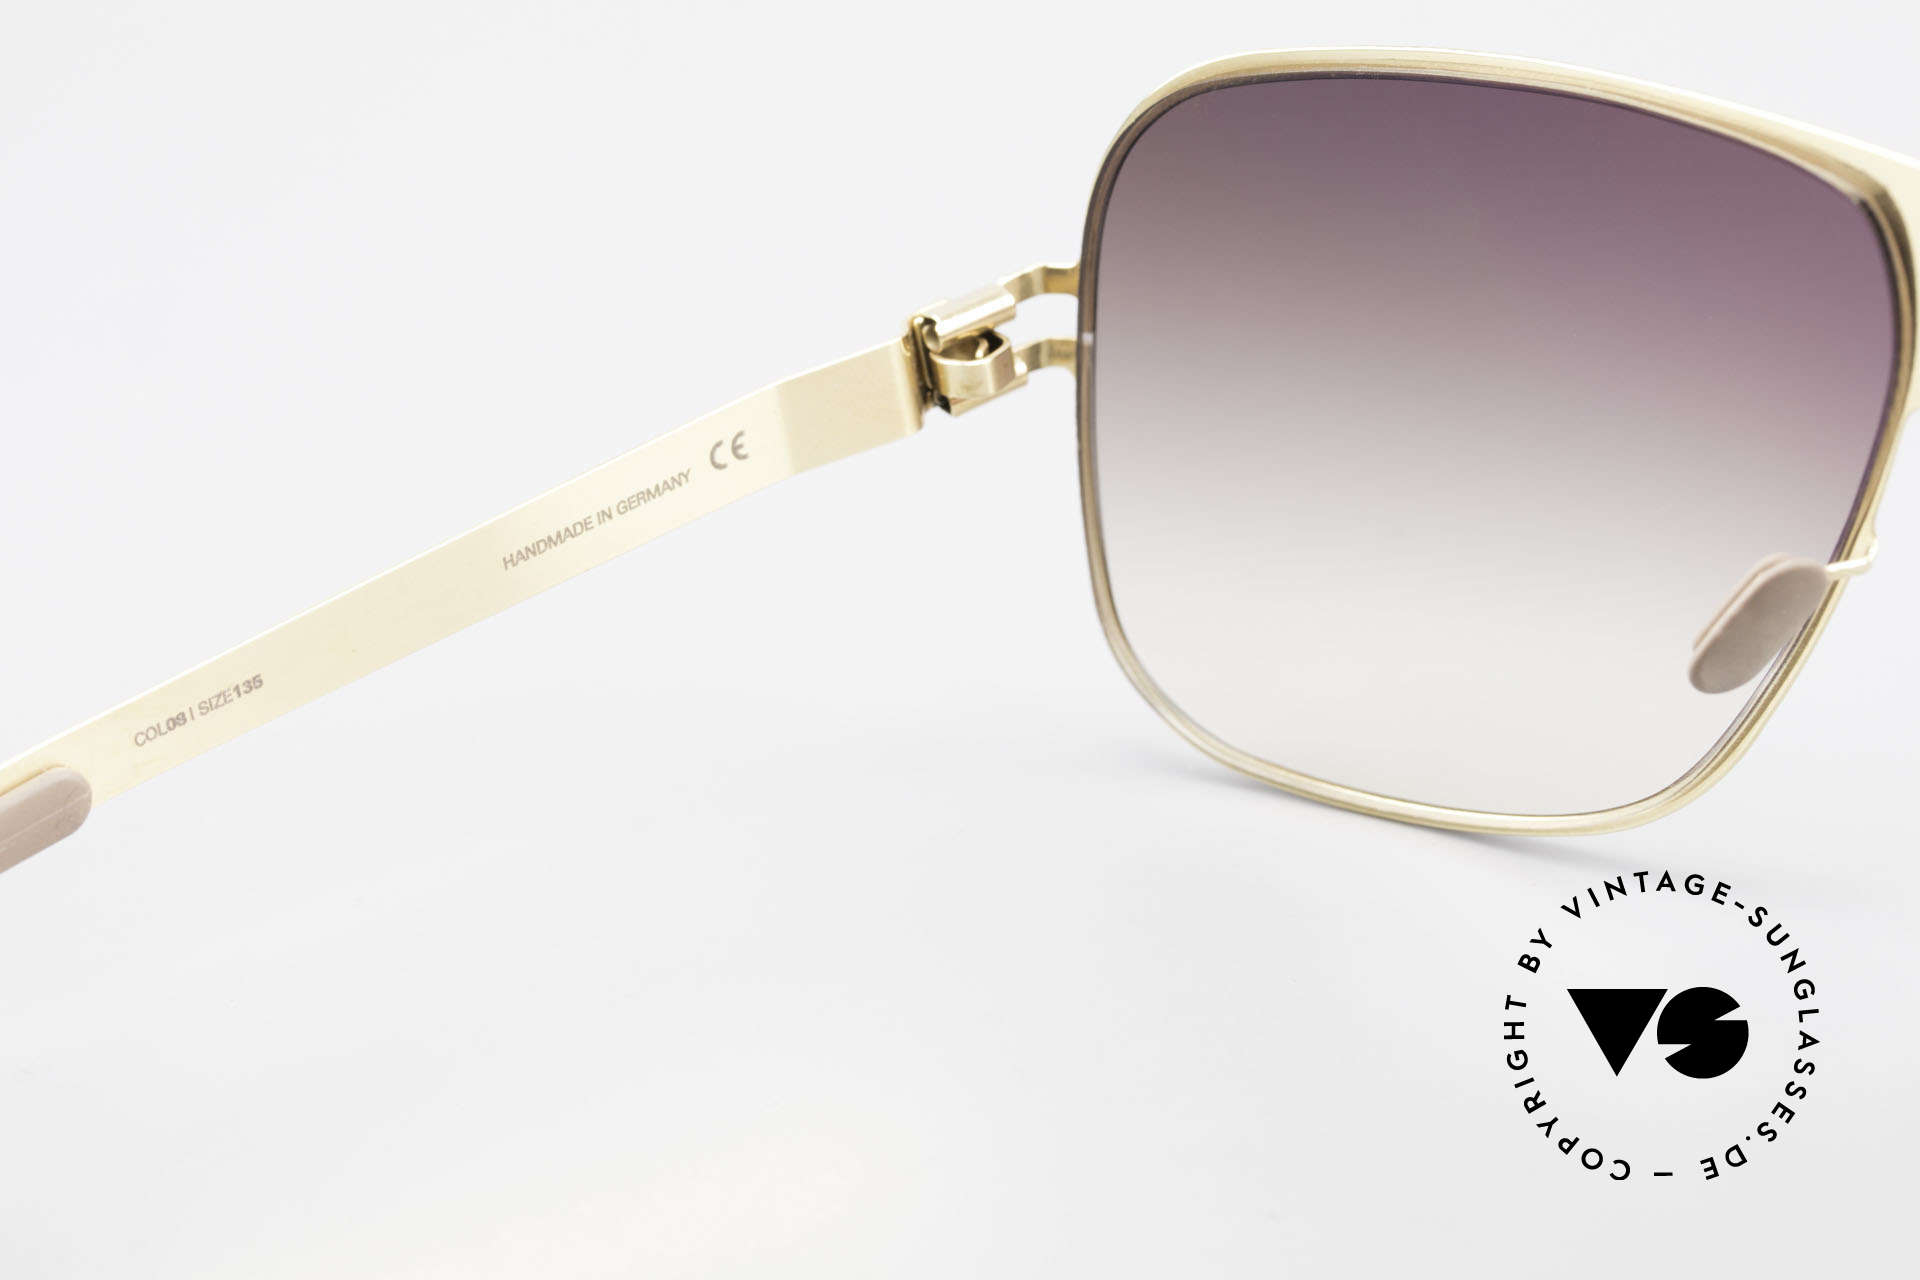 Mykita Hector Vintage Mykita Frame From 2009, worn by many celebs (rare & in high demand, meanwhile), Made for Men